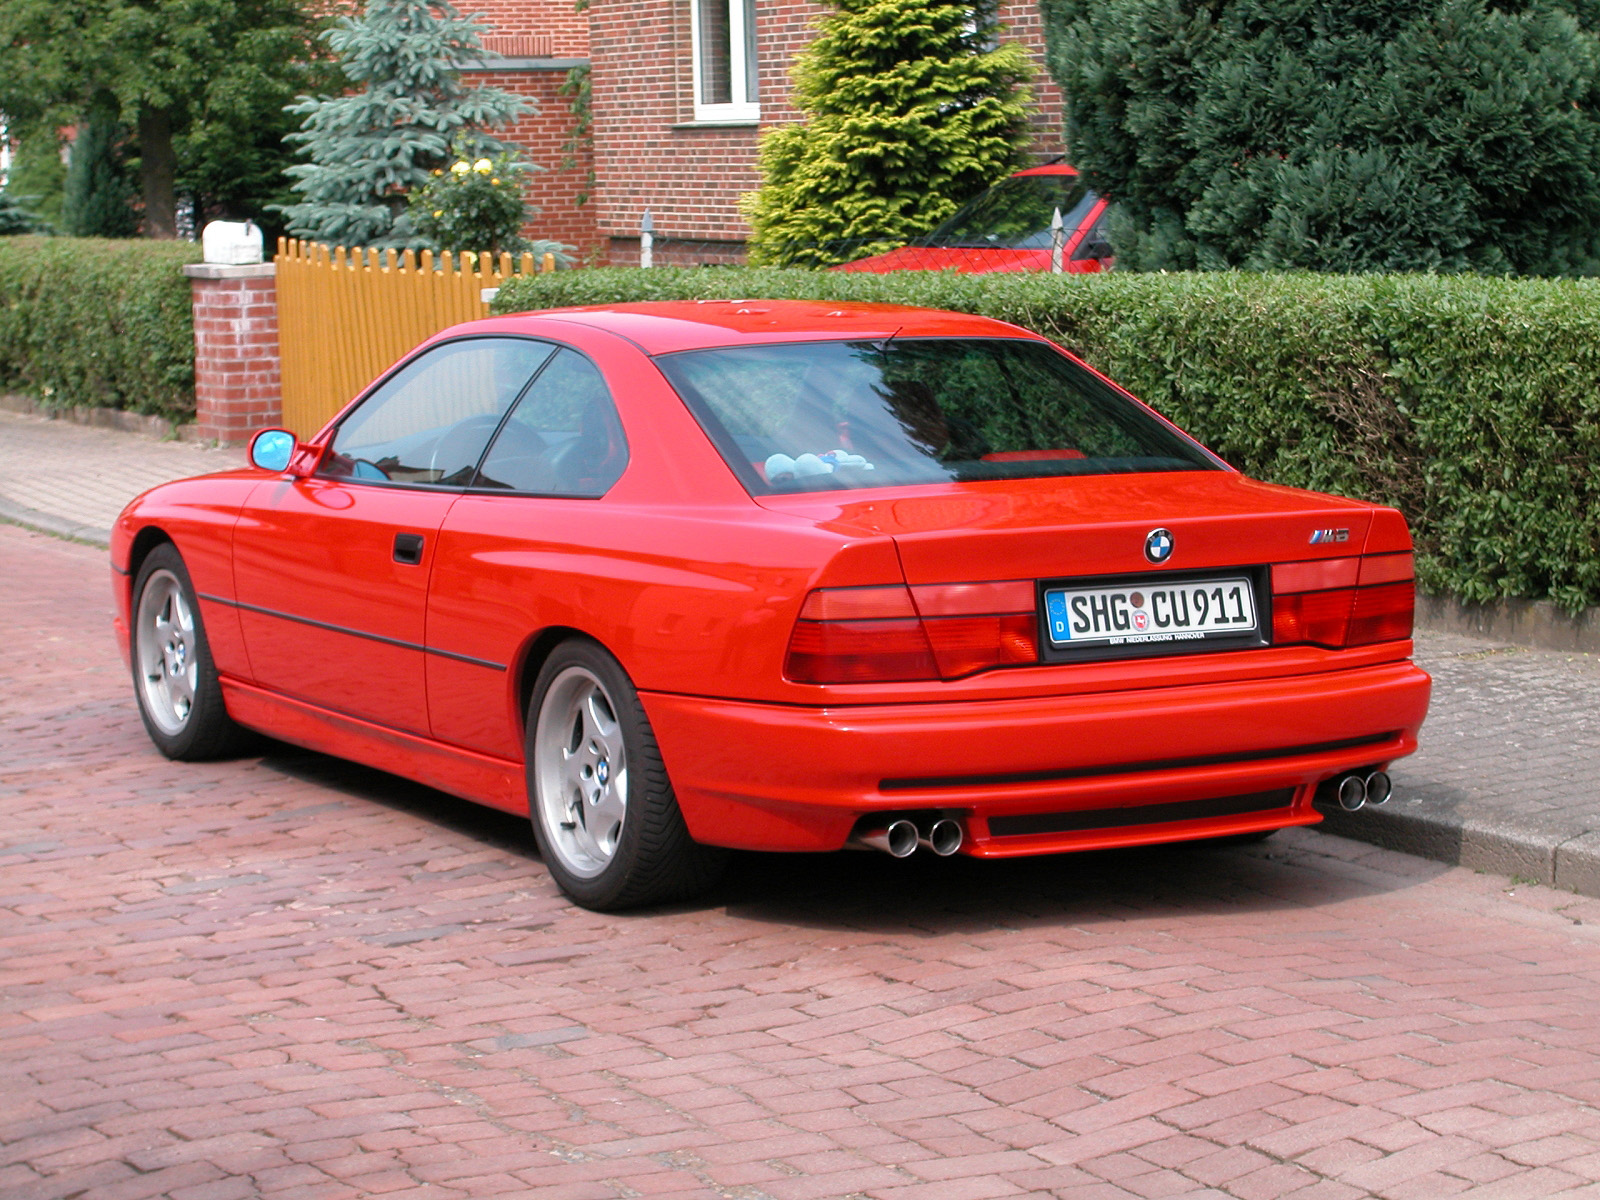 Bmw 8 Series Photos Photo Gallery Page 2 Carsbase Com